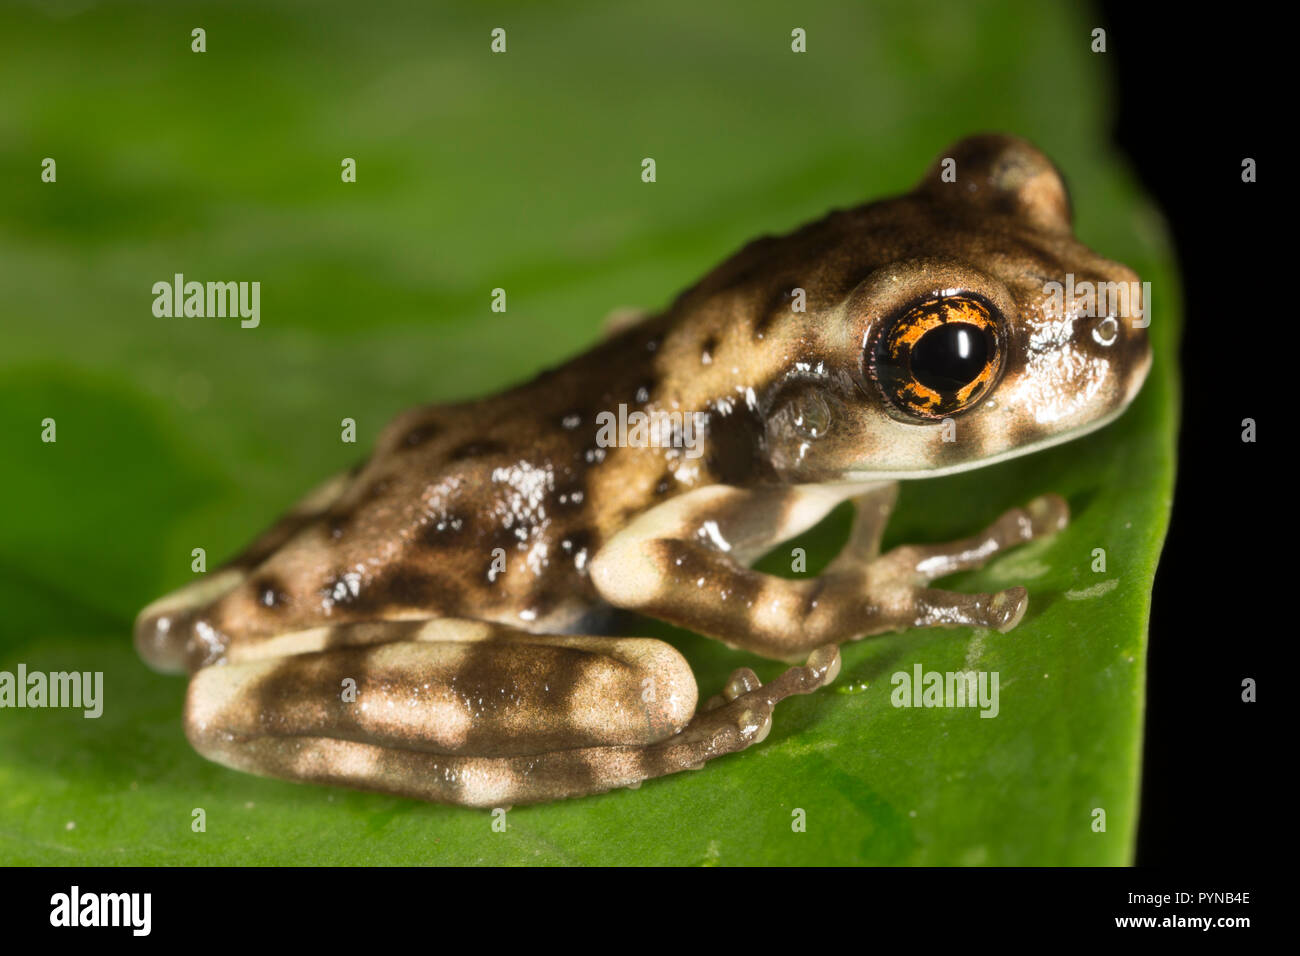 A tree frog photographed in the jungles of Suriname near Botapassie on the Suriname River. Suriname is noted for its unspoiled rainforests and biodive - Stock Image